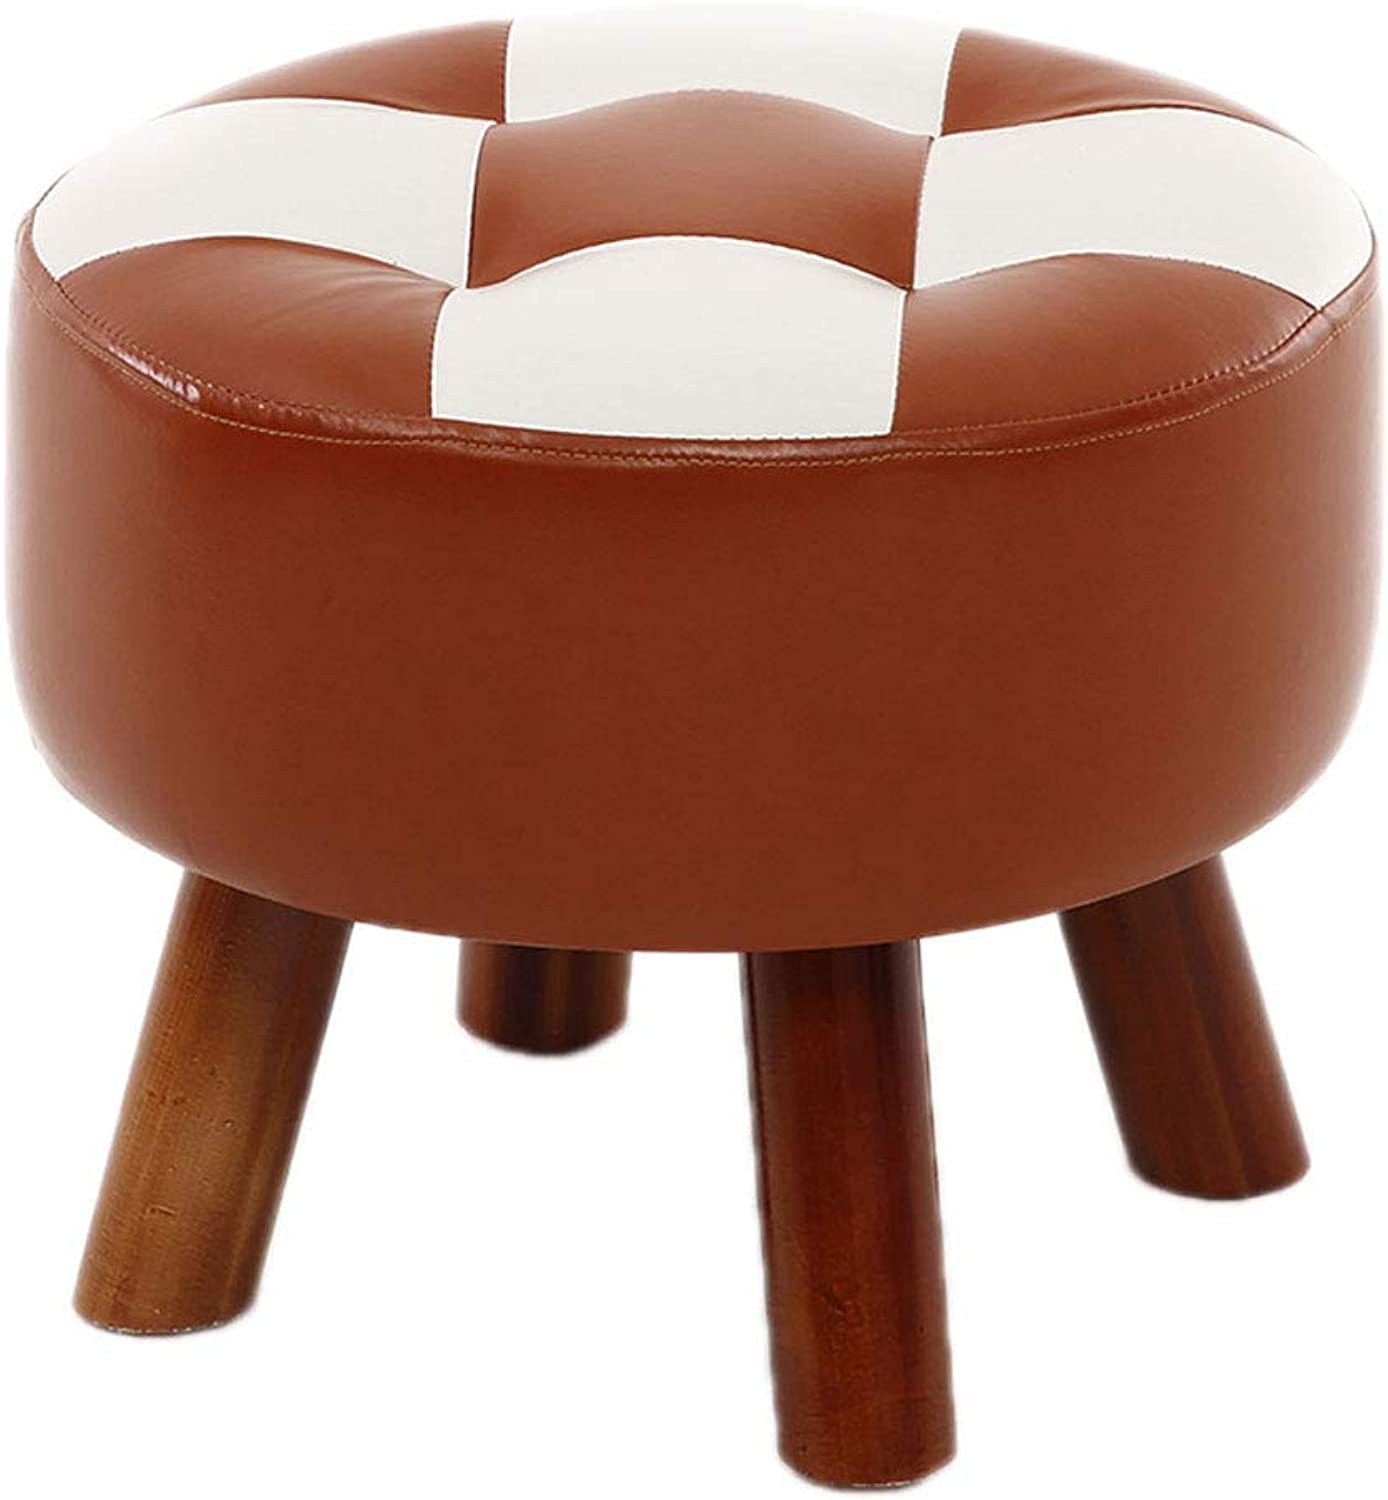 AJZGF Solid Wood Footstool Imitation Leather Stool shoes Sitting pier Dressing Stool - Small Stool (color   C)